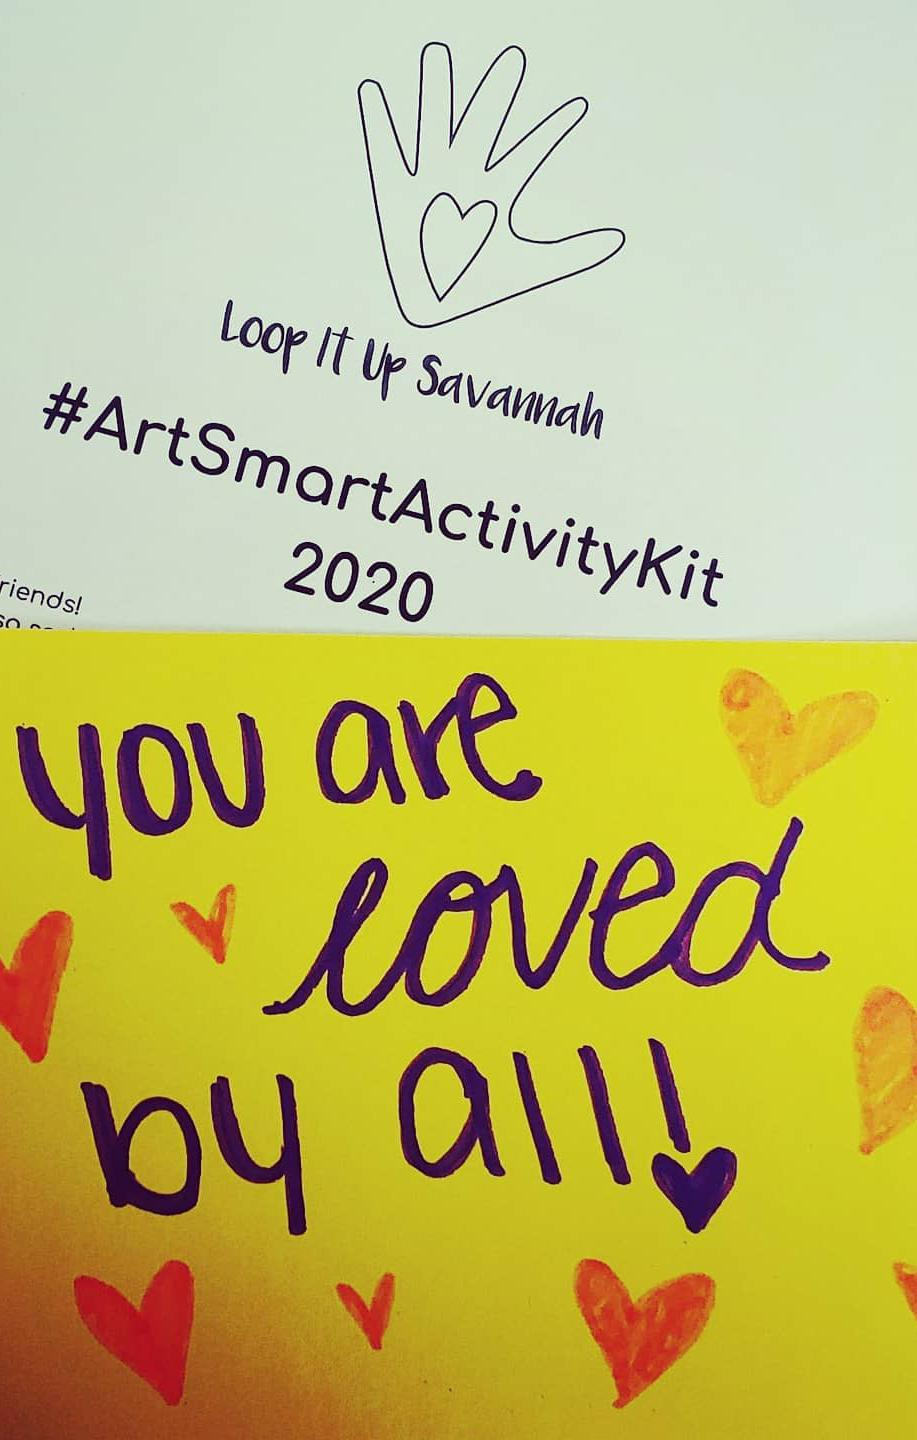 An Art Smart Activity book